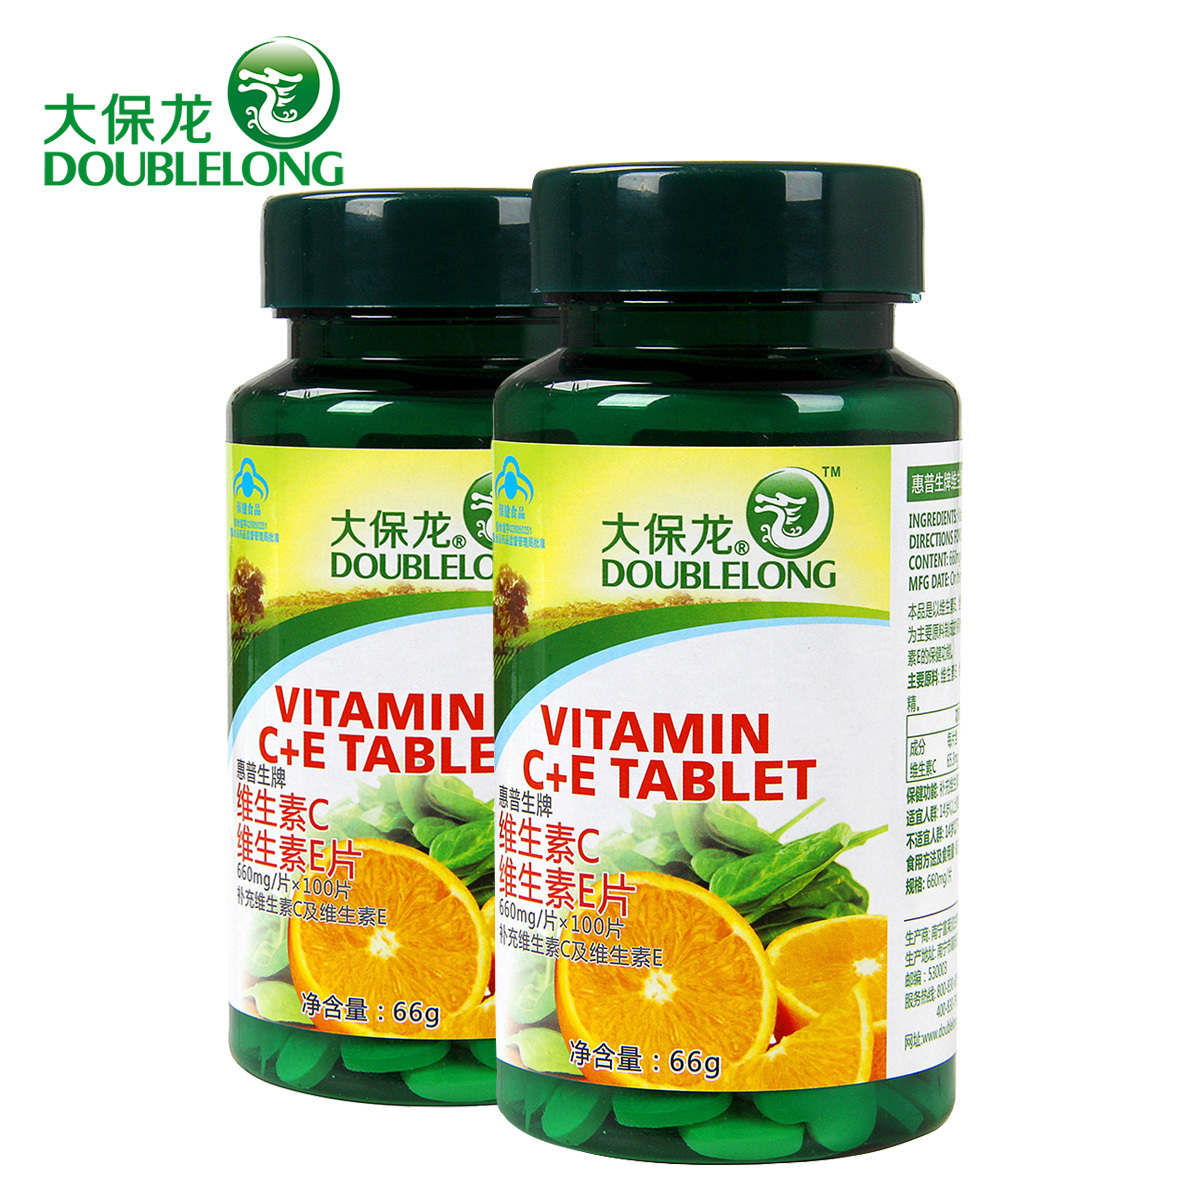 2 bottles of 200 tablets of dabaolong vitamin C and vitamin E 660mg / tablet * 100 tablets * 2 bottles